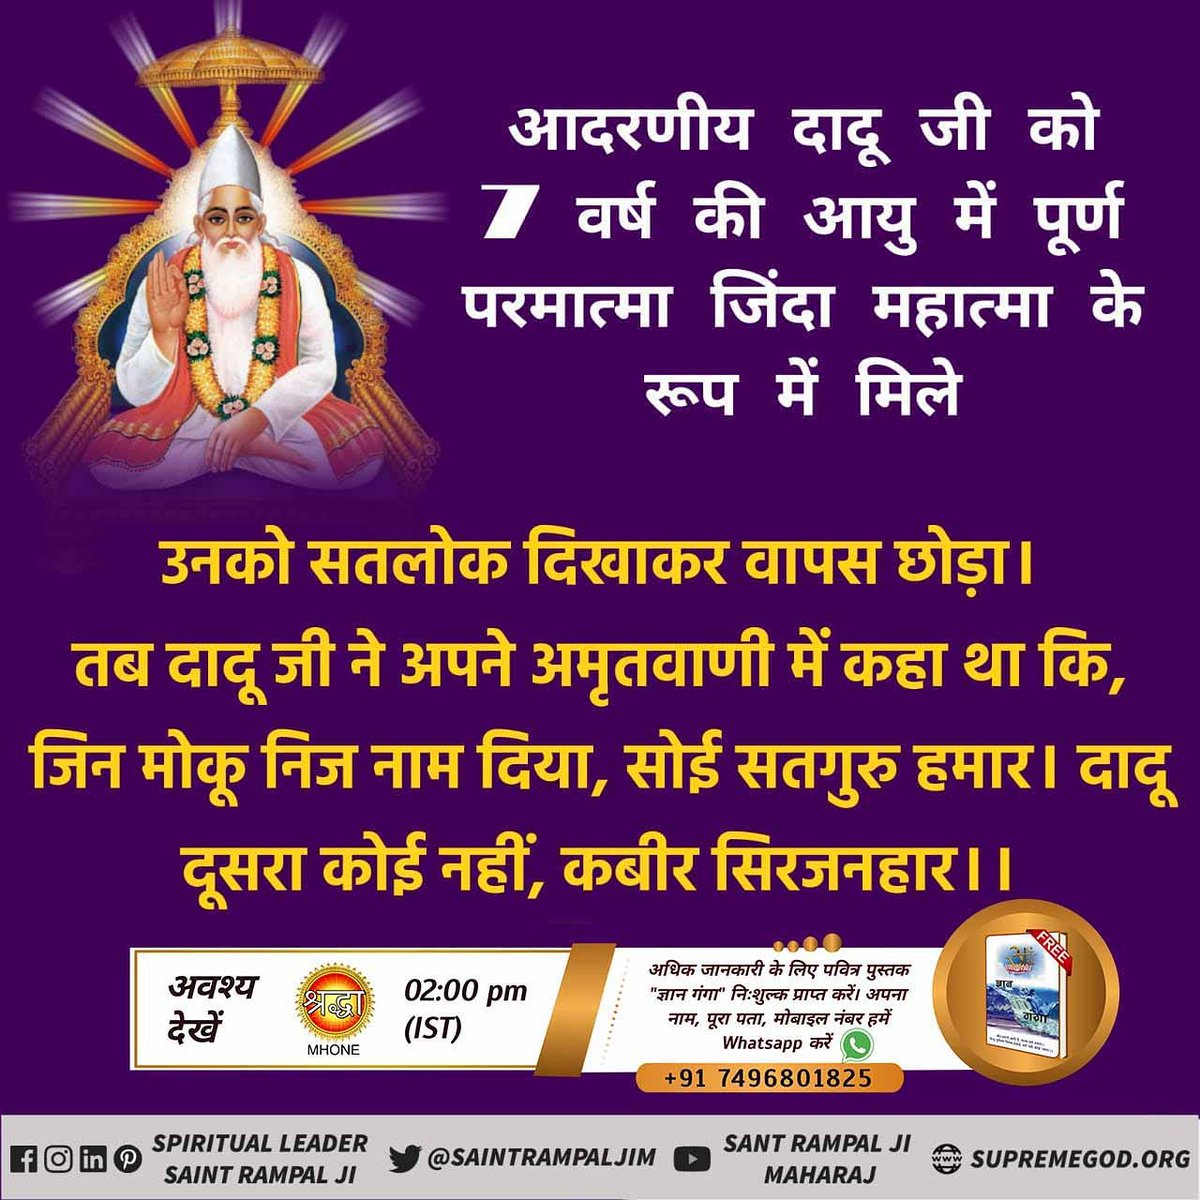 #EyeWitnessOfGod WORSHIP    #Allah_CanBe_Seen  Lord kabir met malook das ji when he was 42 years of age : HE TOOK HIM TO SATLOK AND GOT HIM ACQUAINTED WITH ALL ThE LOKS.THEN ,MALOOK DAS JI MENTIONED lN HIS DIVINE SPEECH: JAPO RE MANN , PARMESHWAR  NAAM KABIR.. @ANI @aajtak